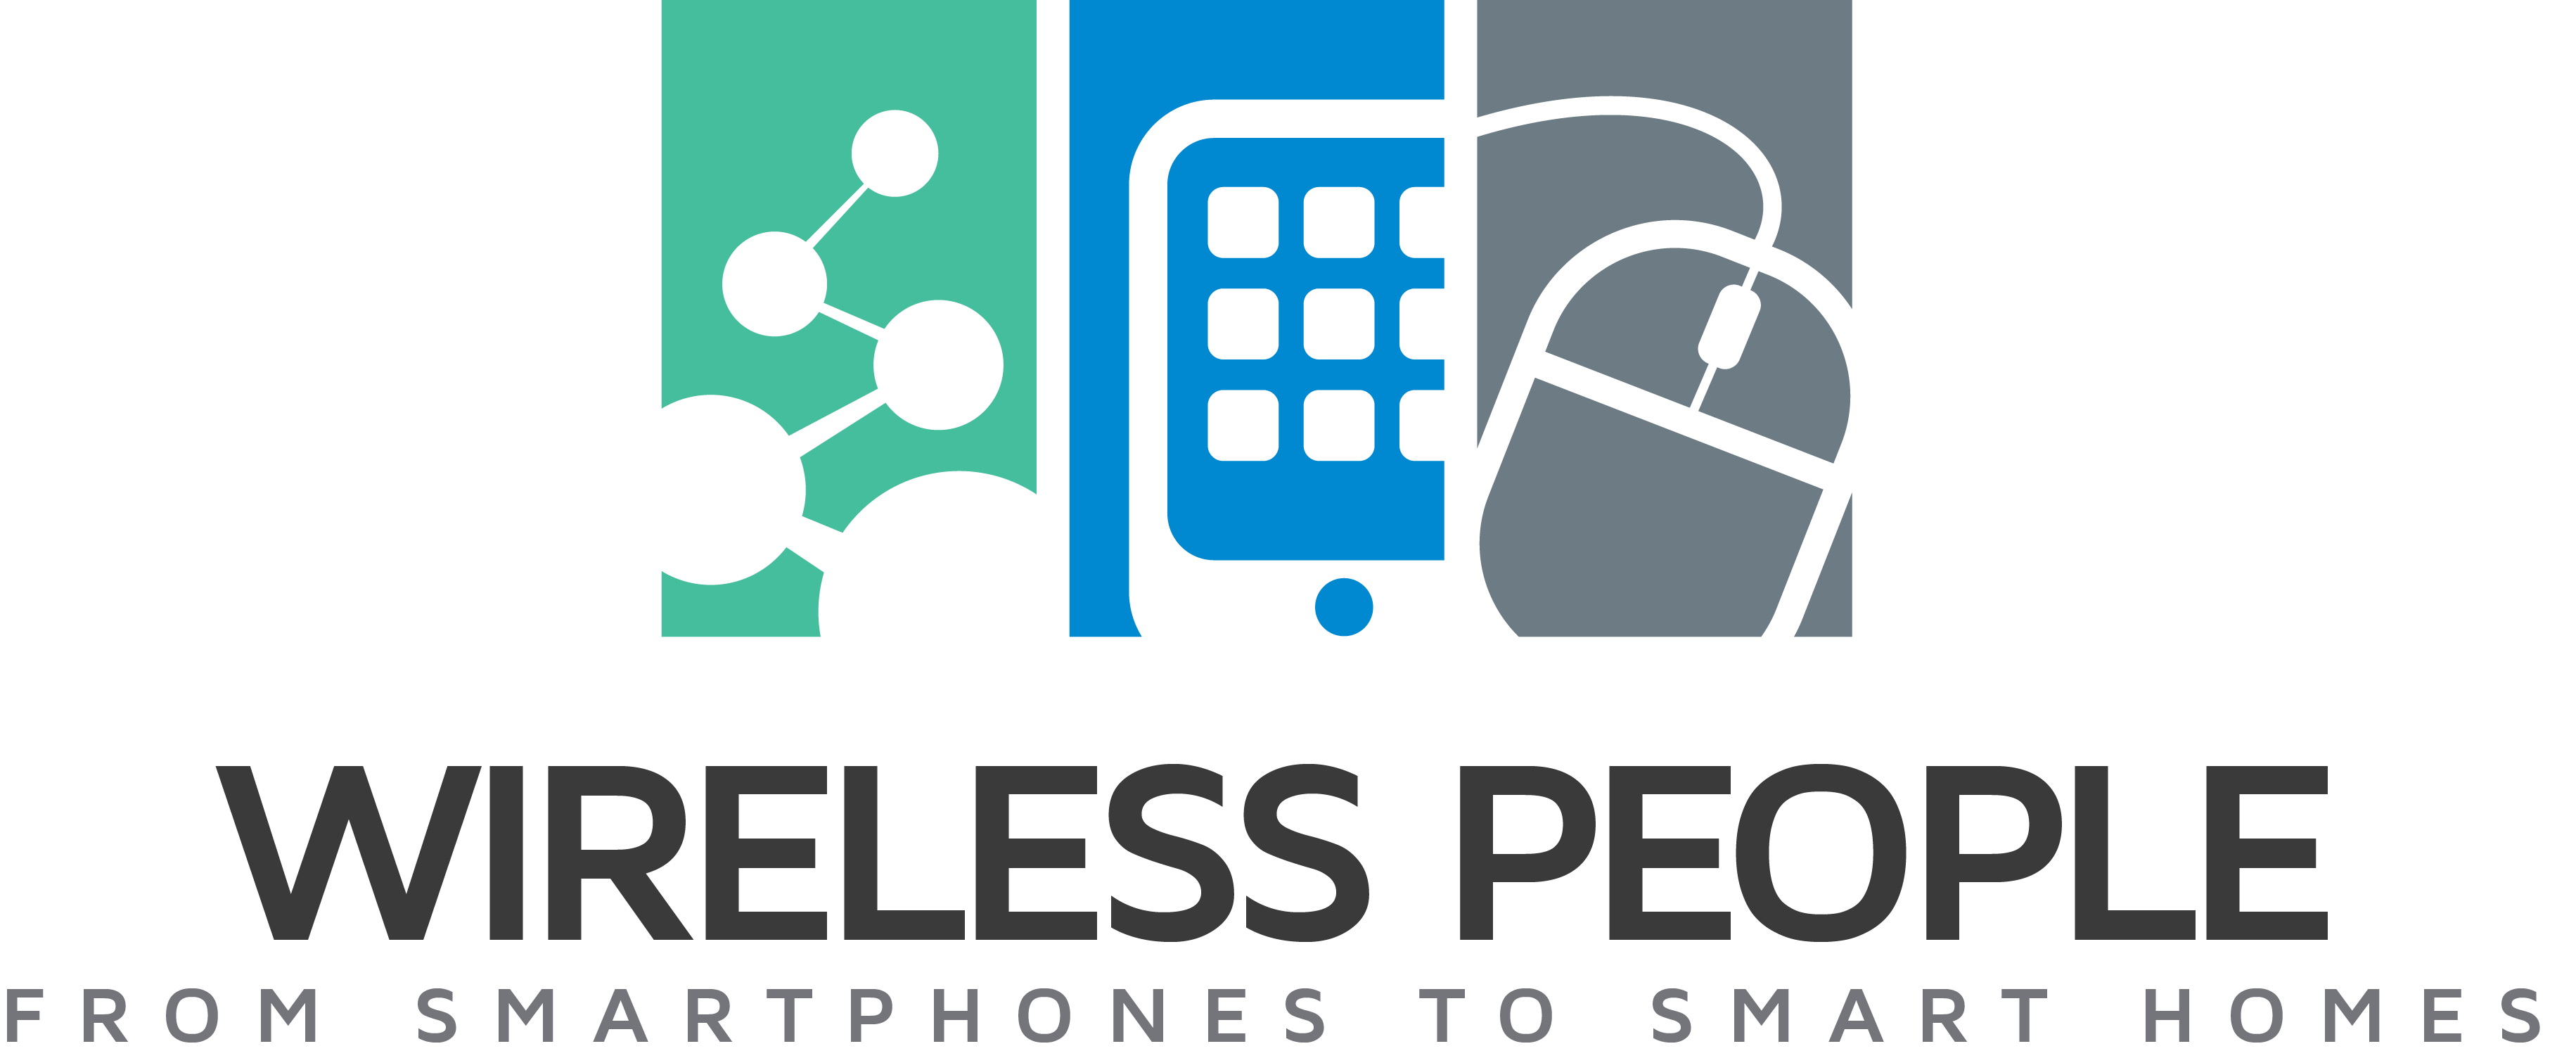 WIRELESS PEOPLE